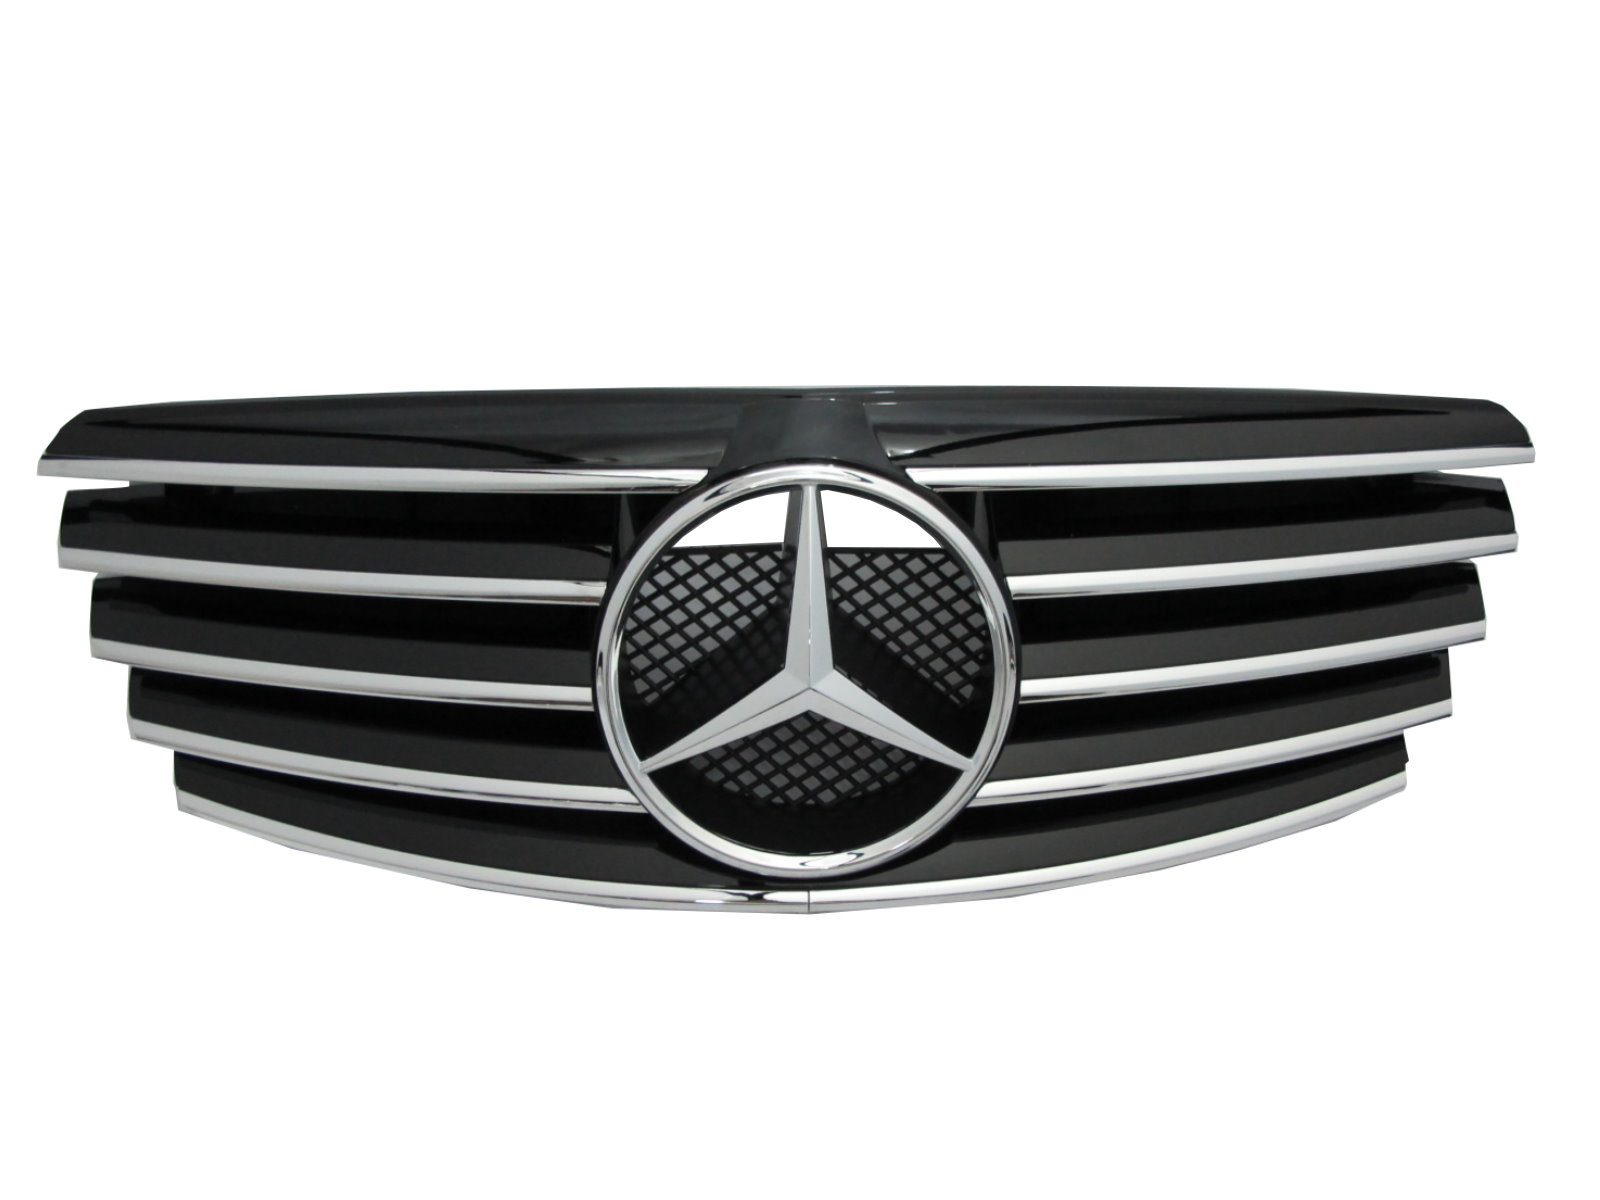 W210 2000 2002 faceliftd grille grill 5fin chrome black for Mercedes benz grille